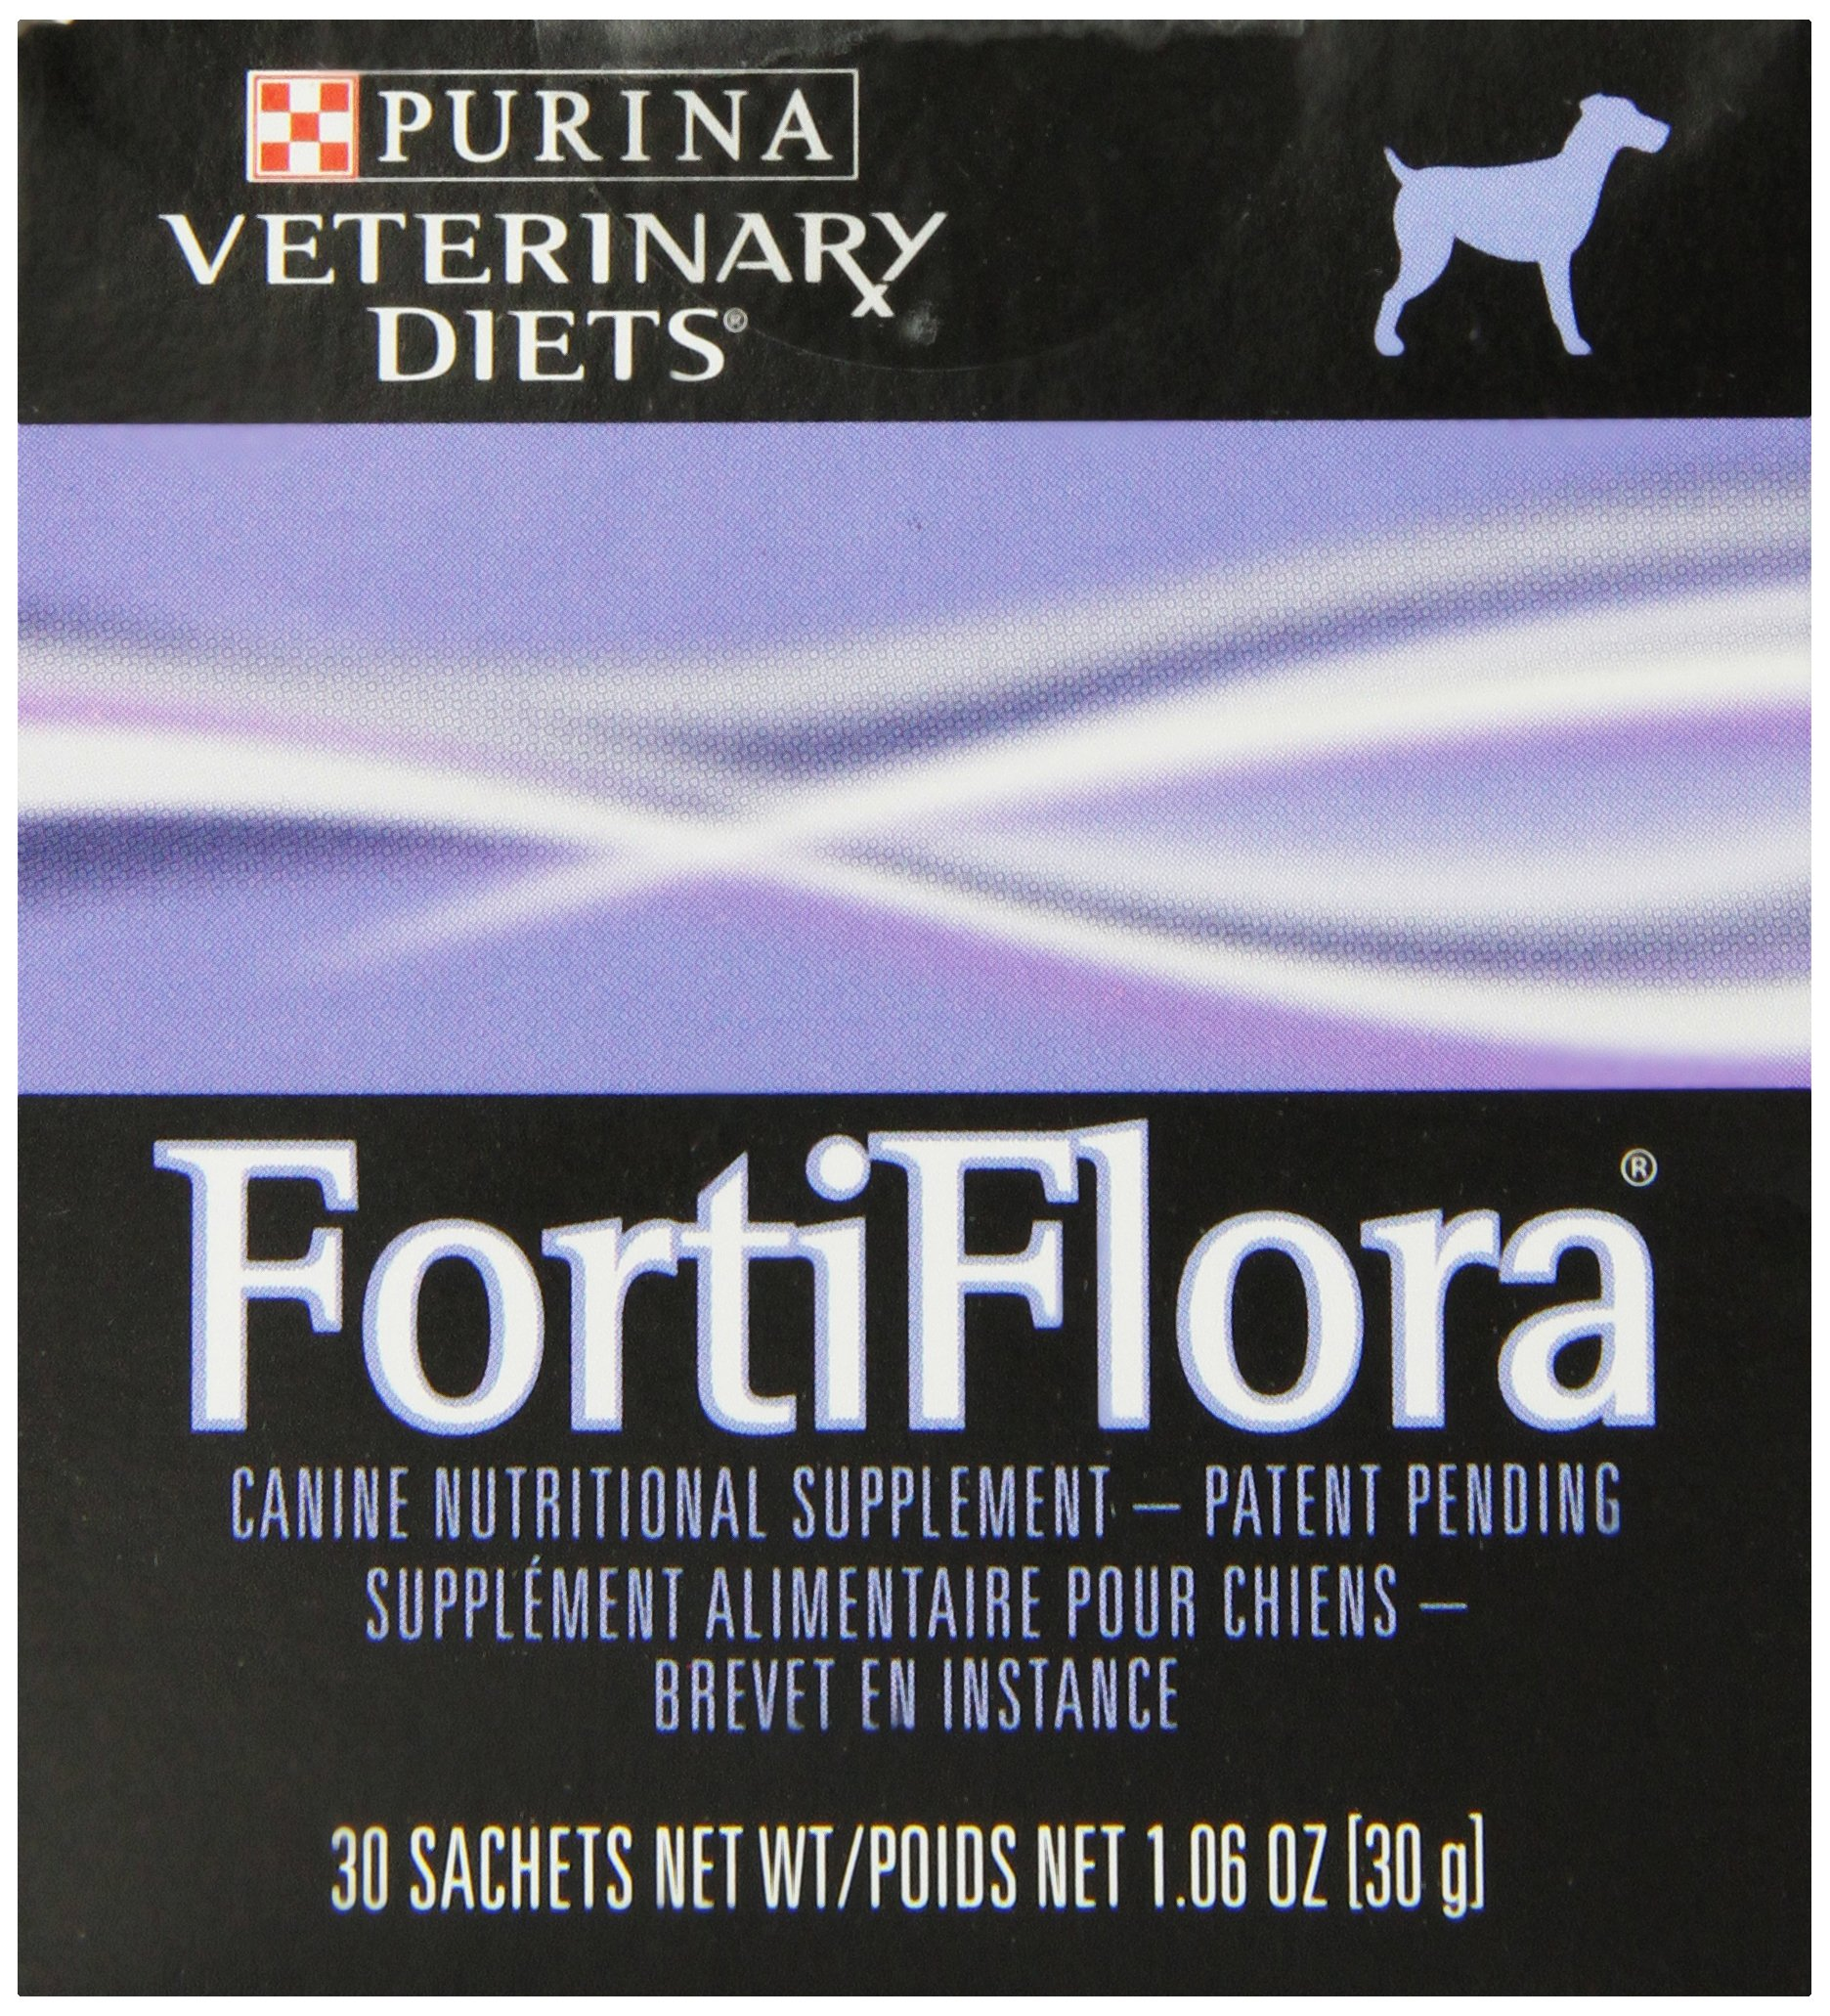 Purina Fortiflora Canine Nutritional Supplement Box (3 Pack), 30gm/90 Count